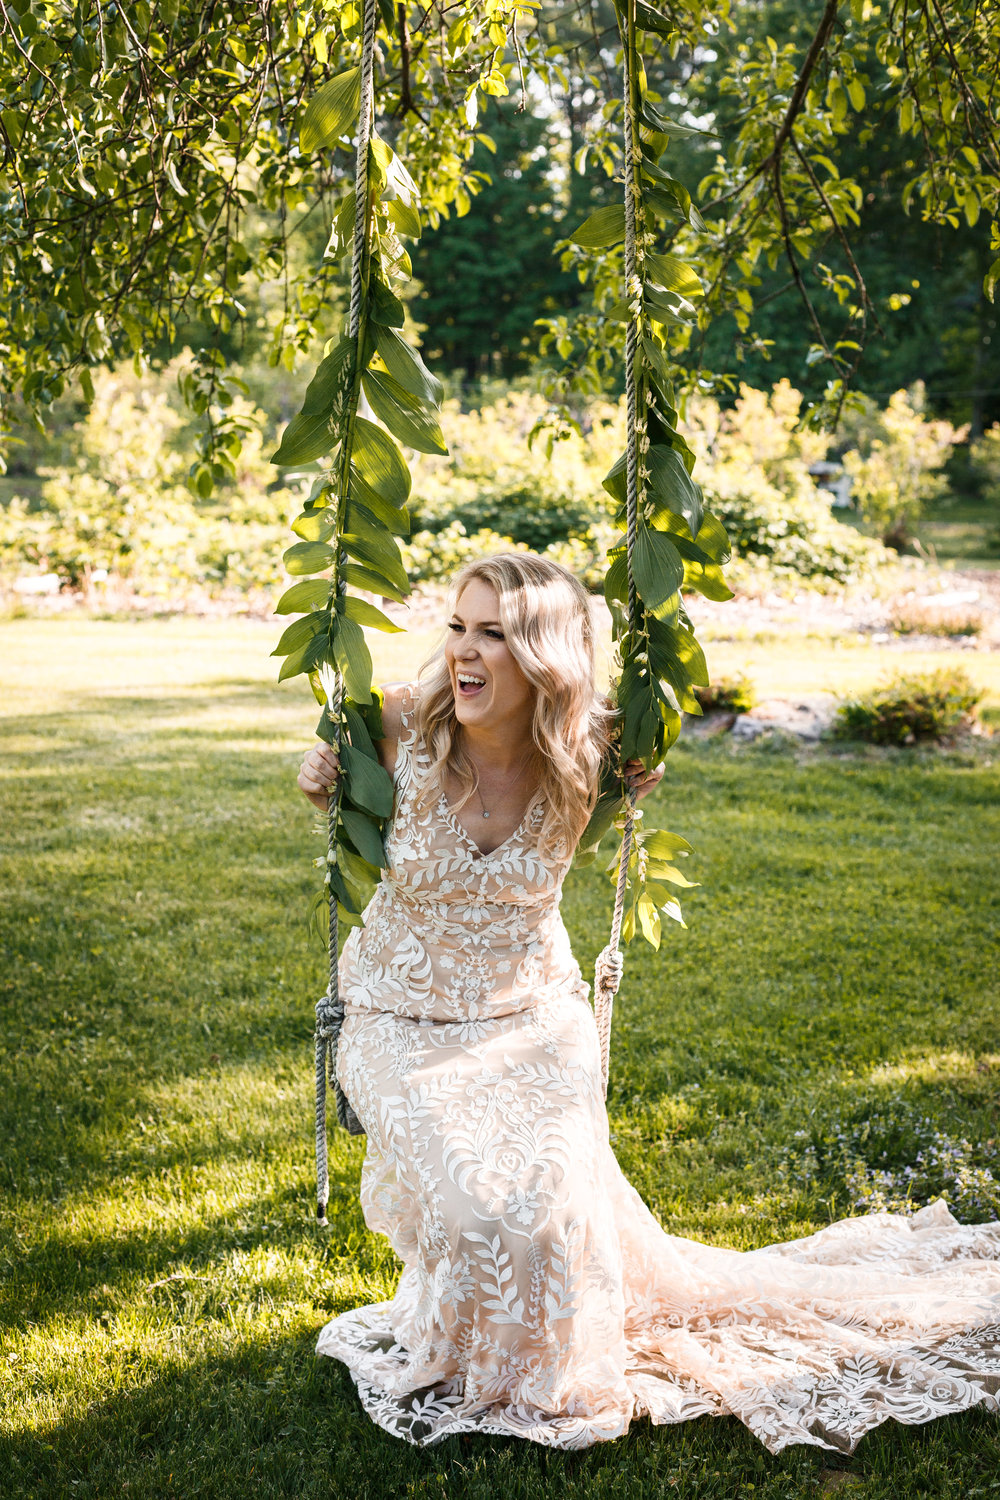 409_maple_moon_farm_lulu_and_co_inspiration_shoot_lebanon_maine_wedding_photographer_whitney_j_fox_9612.jpg